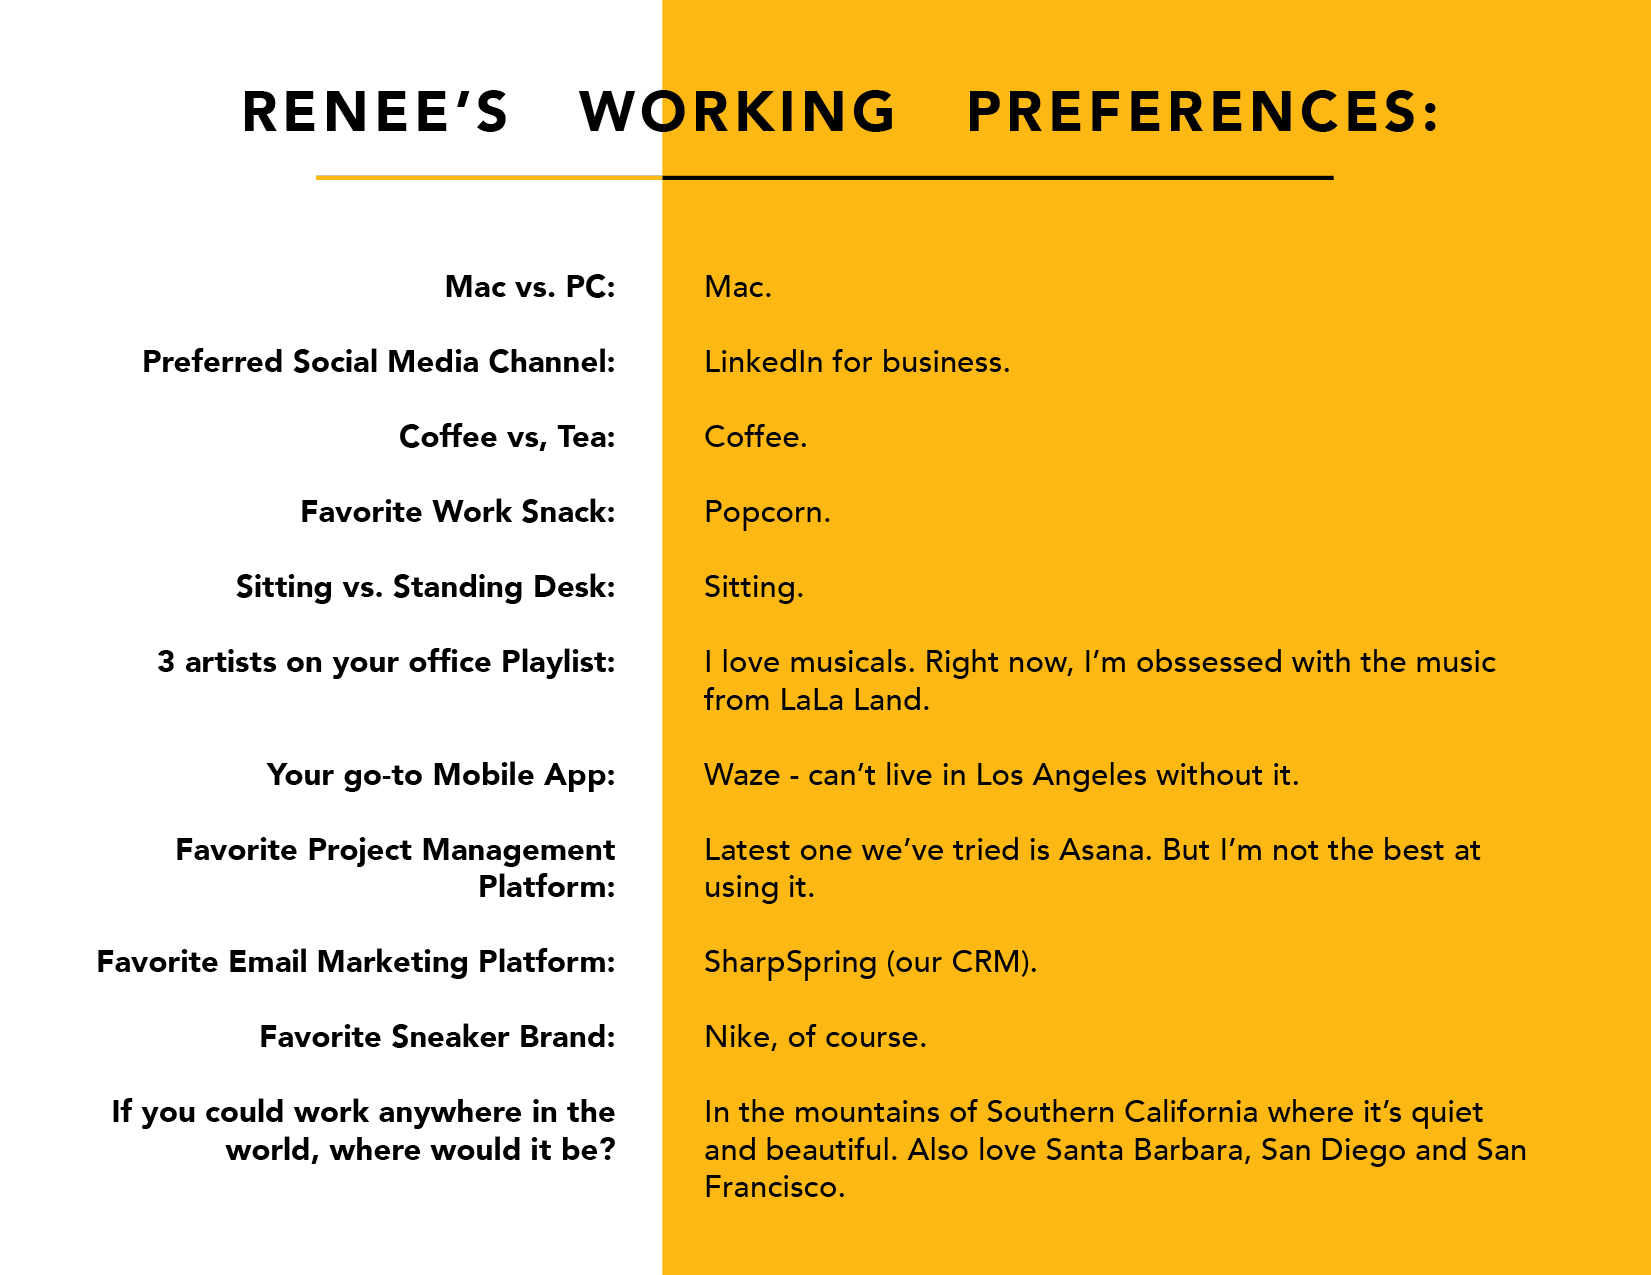 Renee's Working Preferences